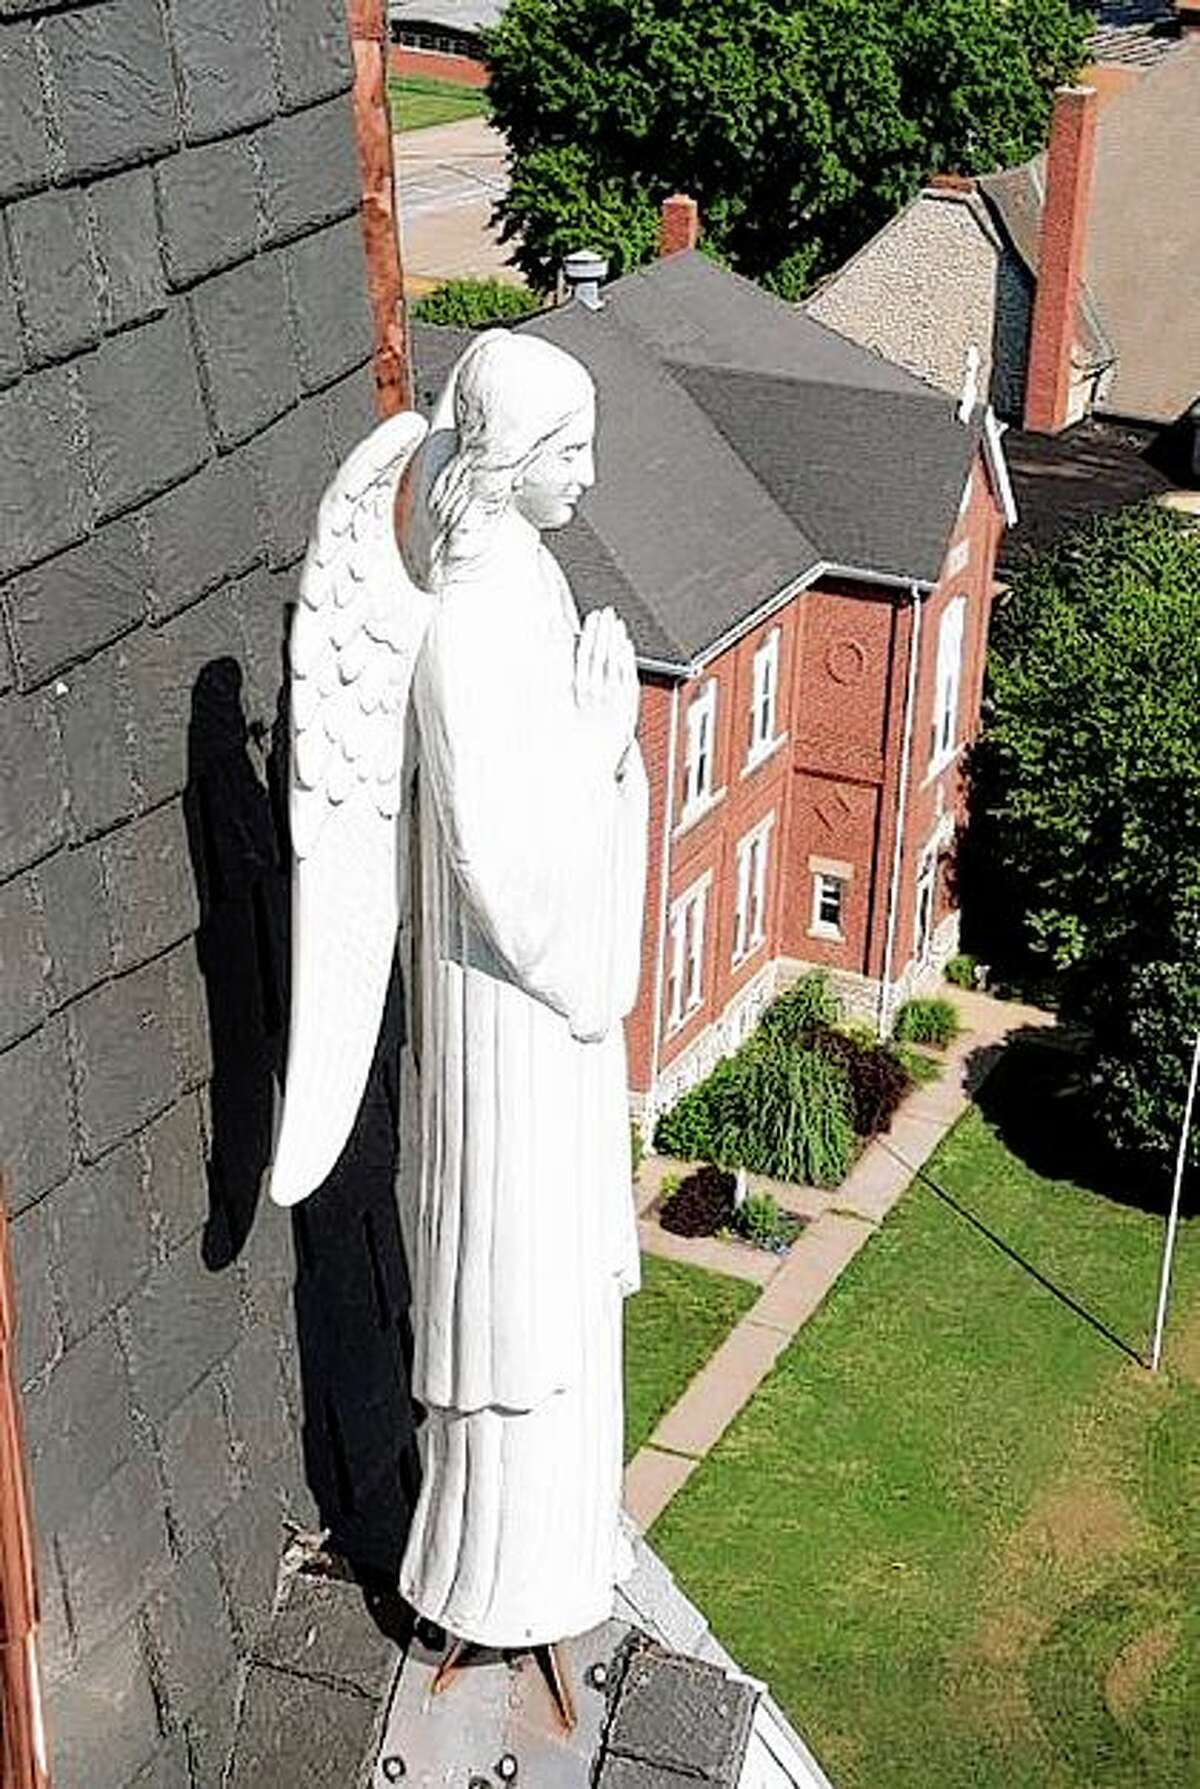 In addition to its history, Saint Francix Xavier Church in Jerseyville features several artistic opportunities.